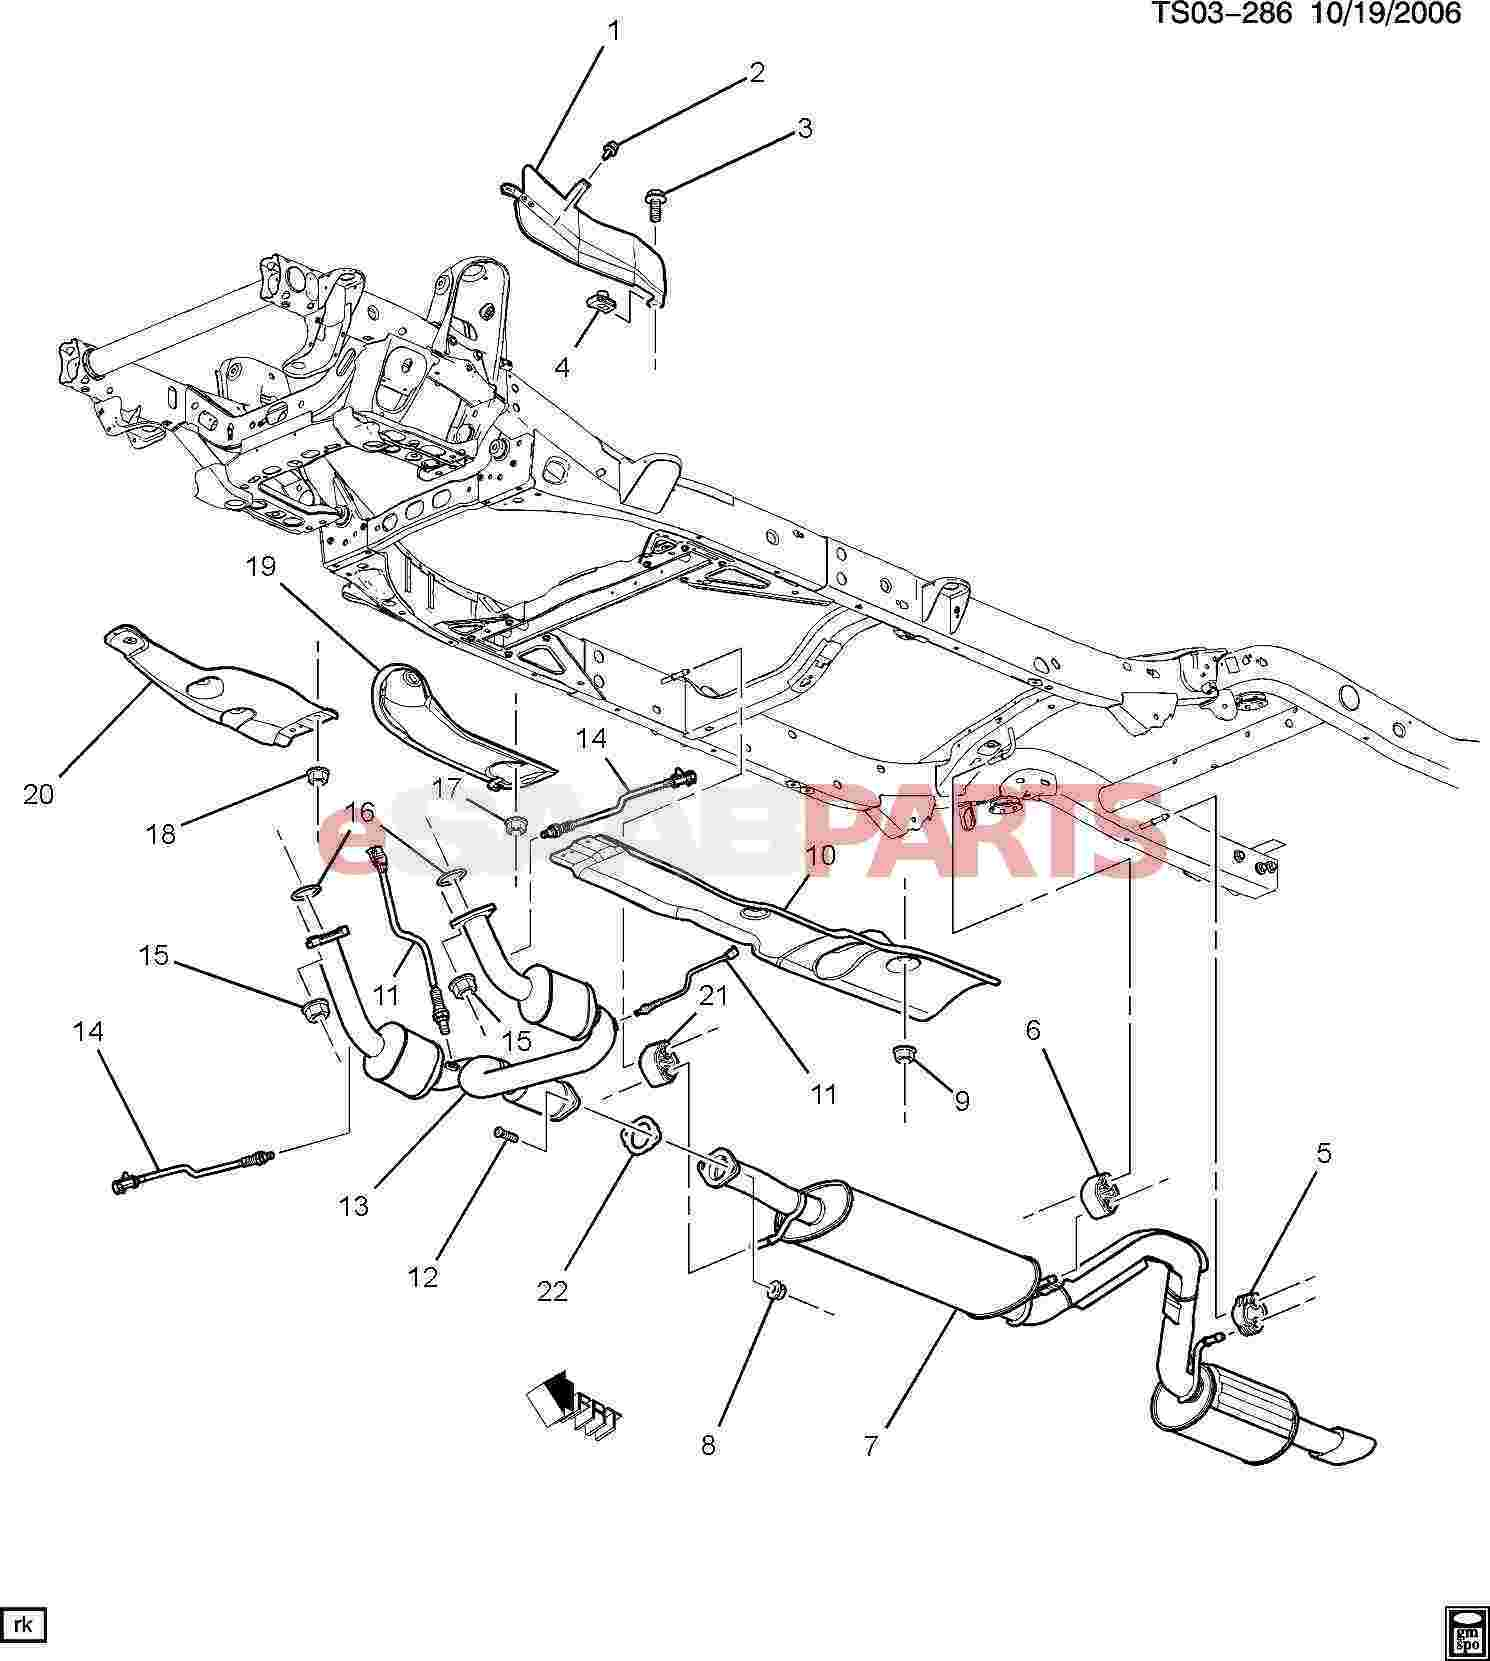 esaabparts com saab 9 7x u003e engine parts u003e exhaust parts u003e  exhaust rh esaabparts com